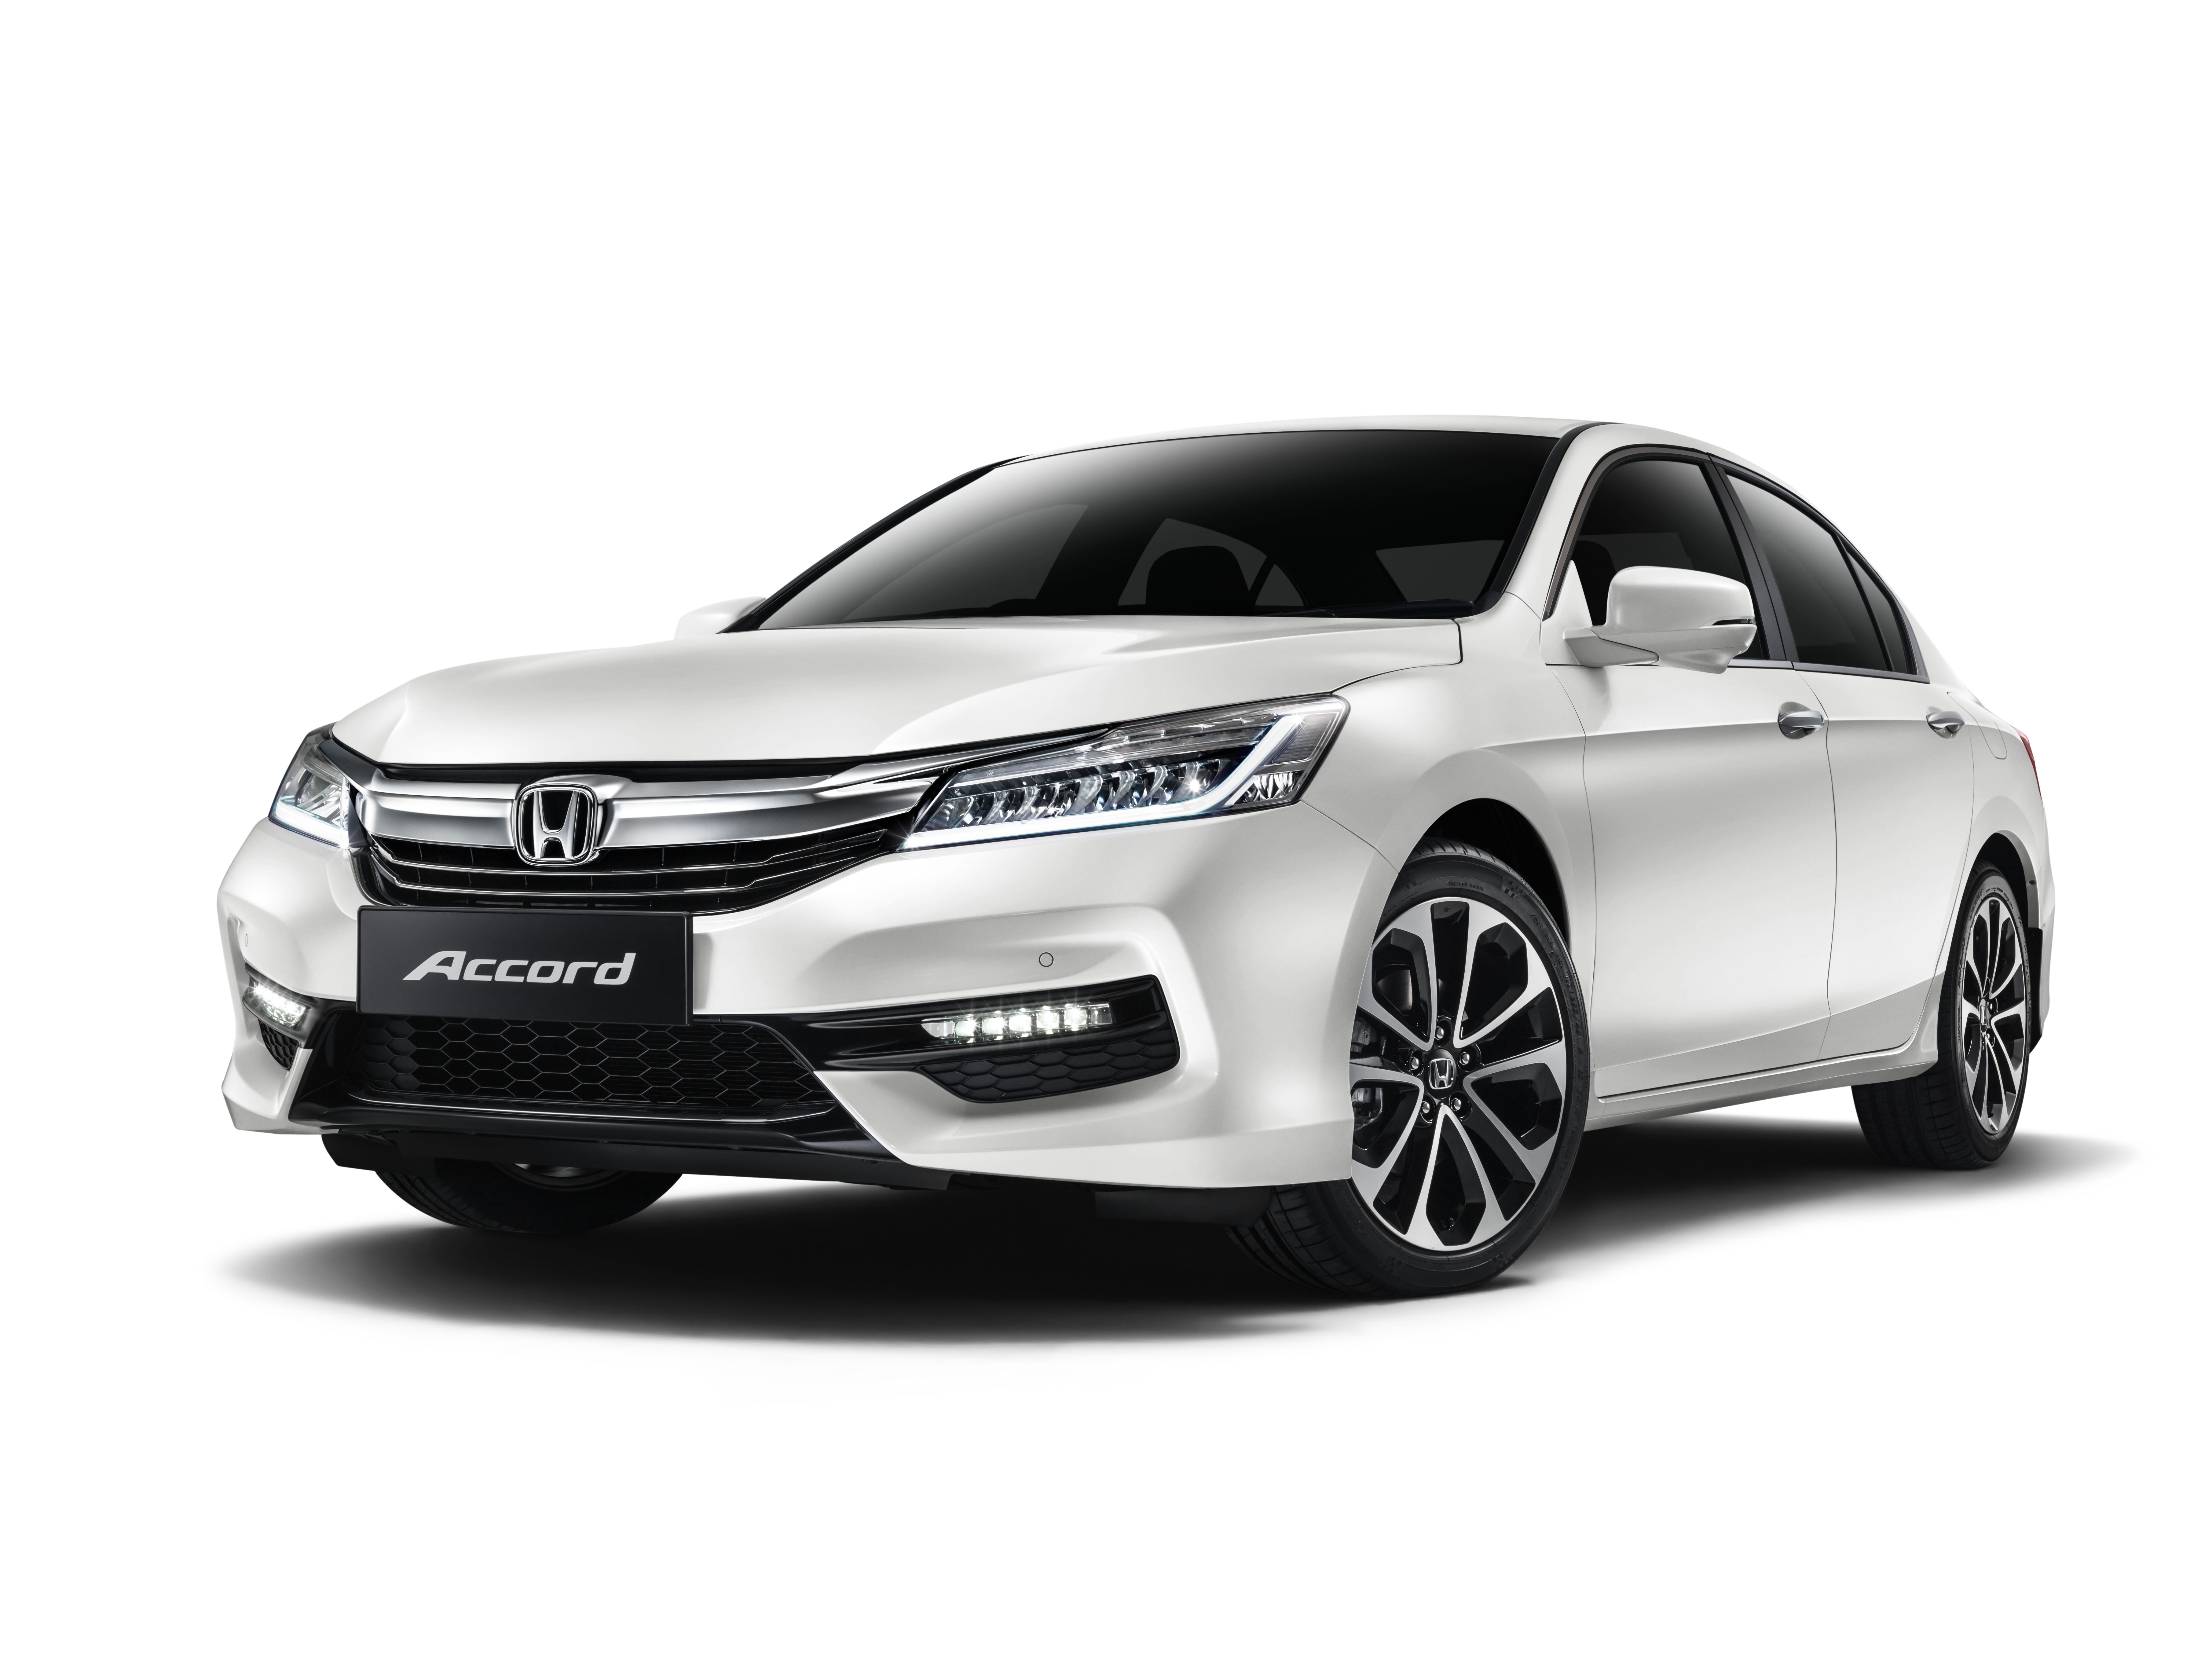 Honda Malaysia Releases Post 1st June 2018 Vehicle Prices Civic Accord Piston Hondas Completely Knocked Down Ckd Models Namely Jazz Hybrid Br V City Hr Cr And Will Reflect A Reduction In